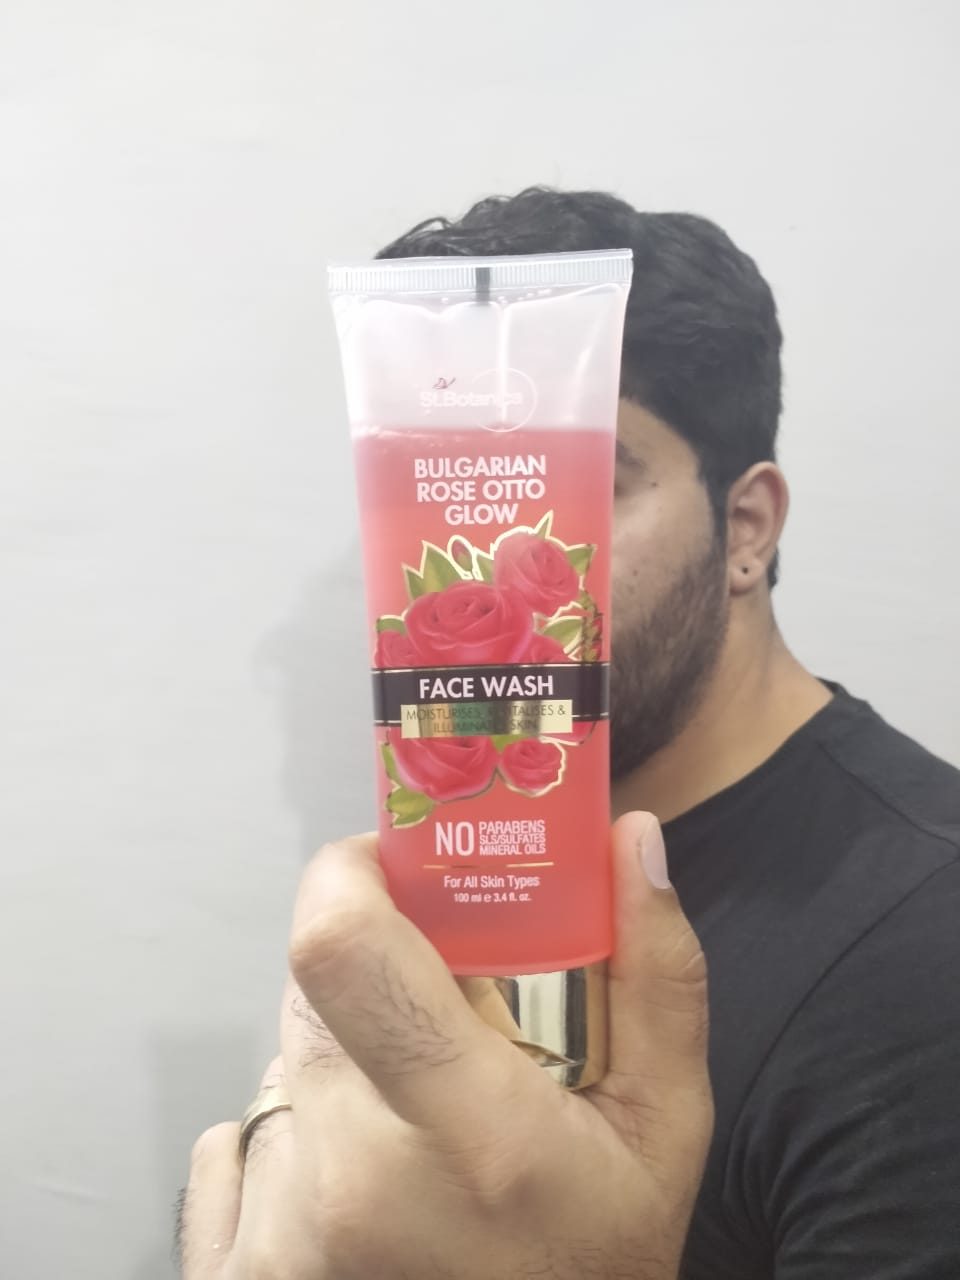 StBotanica Bulgarian Rose Otto Glow Face Wash pic 2-Suitable for all skin types-By saad